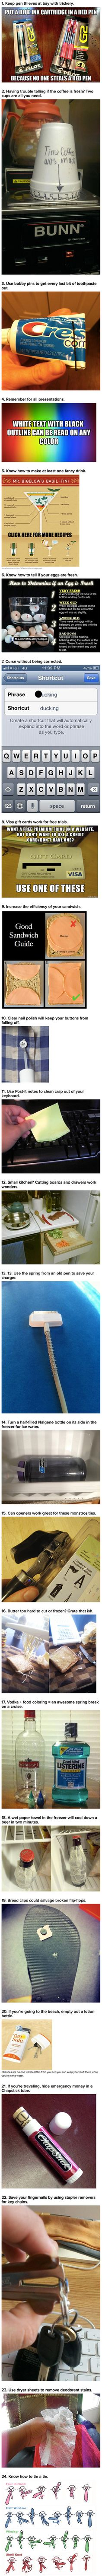 Here are some simple life hacks that everyone should know about.